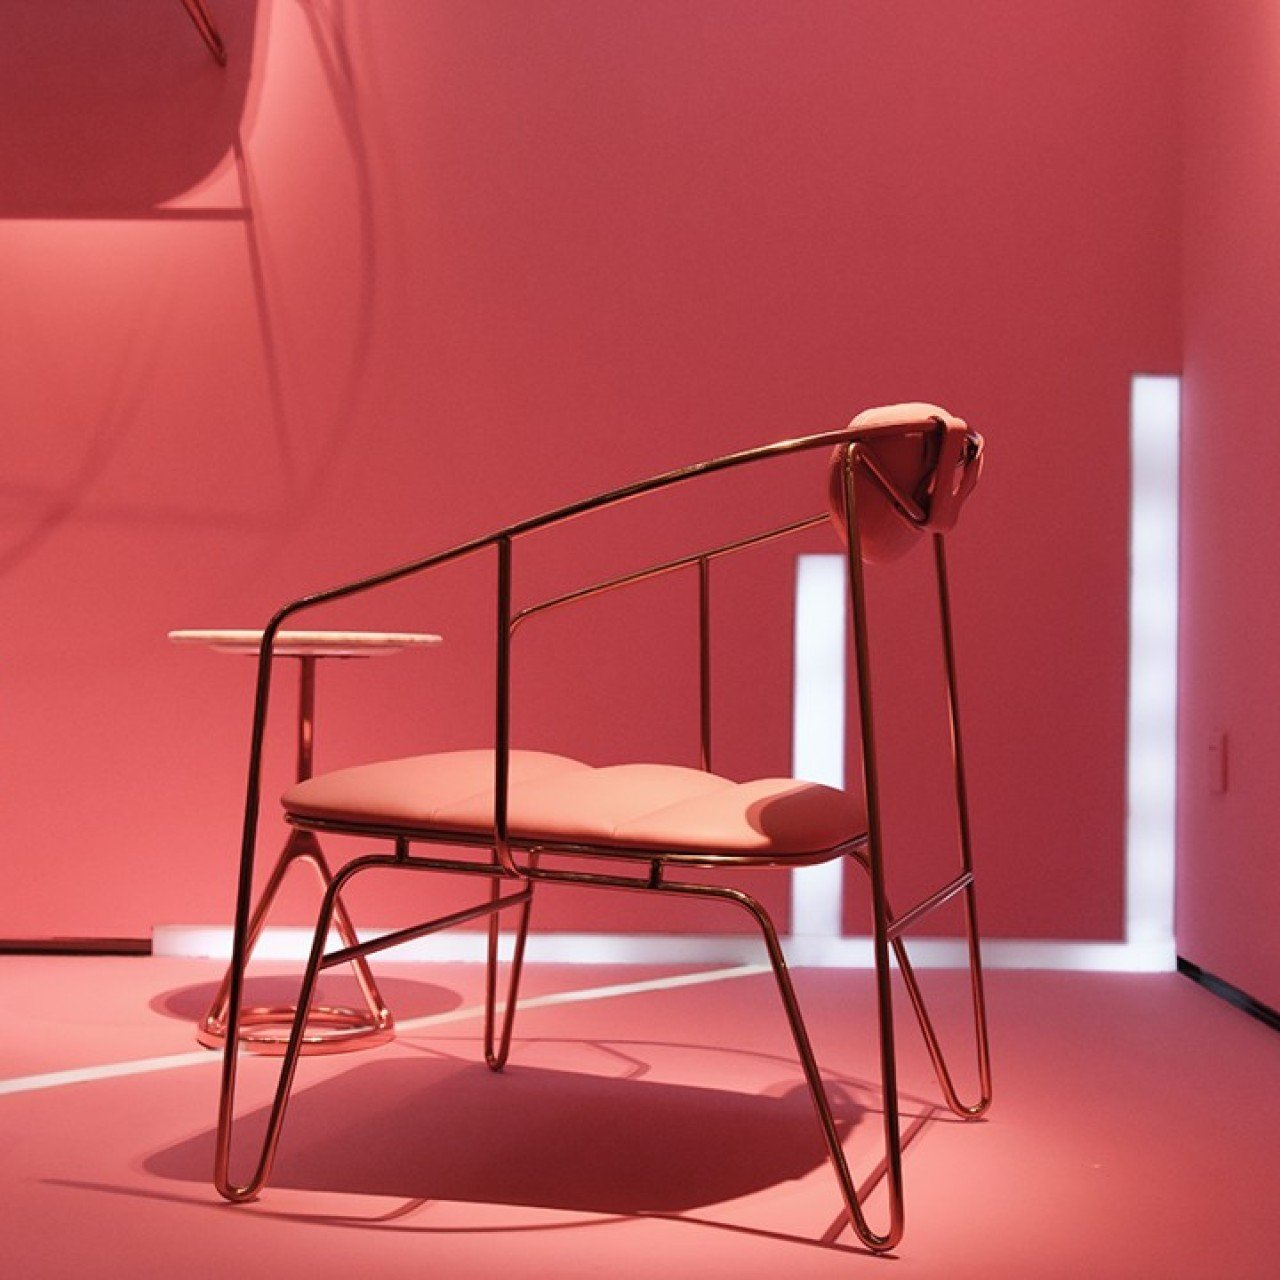 At Design Shanghai 2018 Young Chinese Designers Show Their